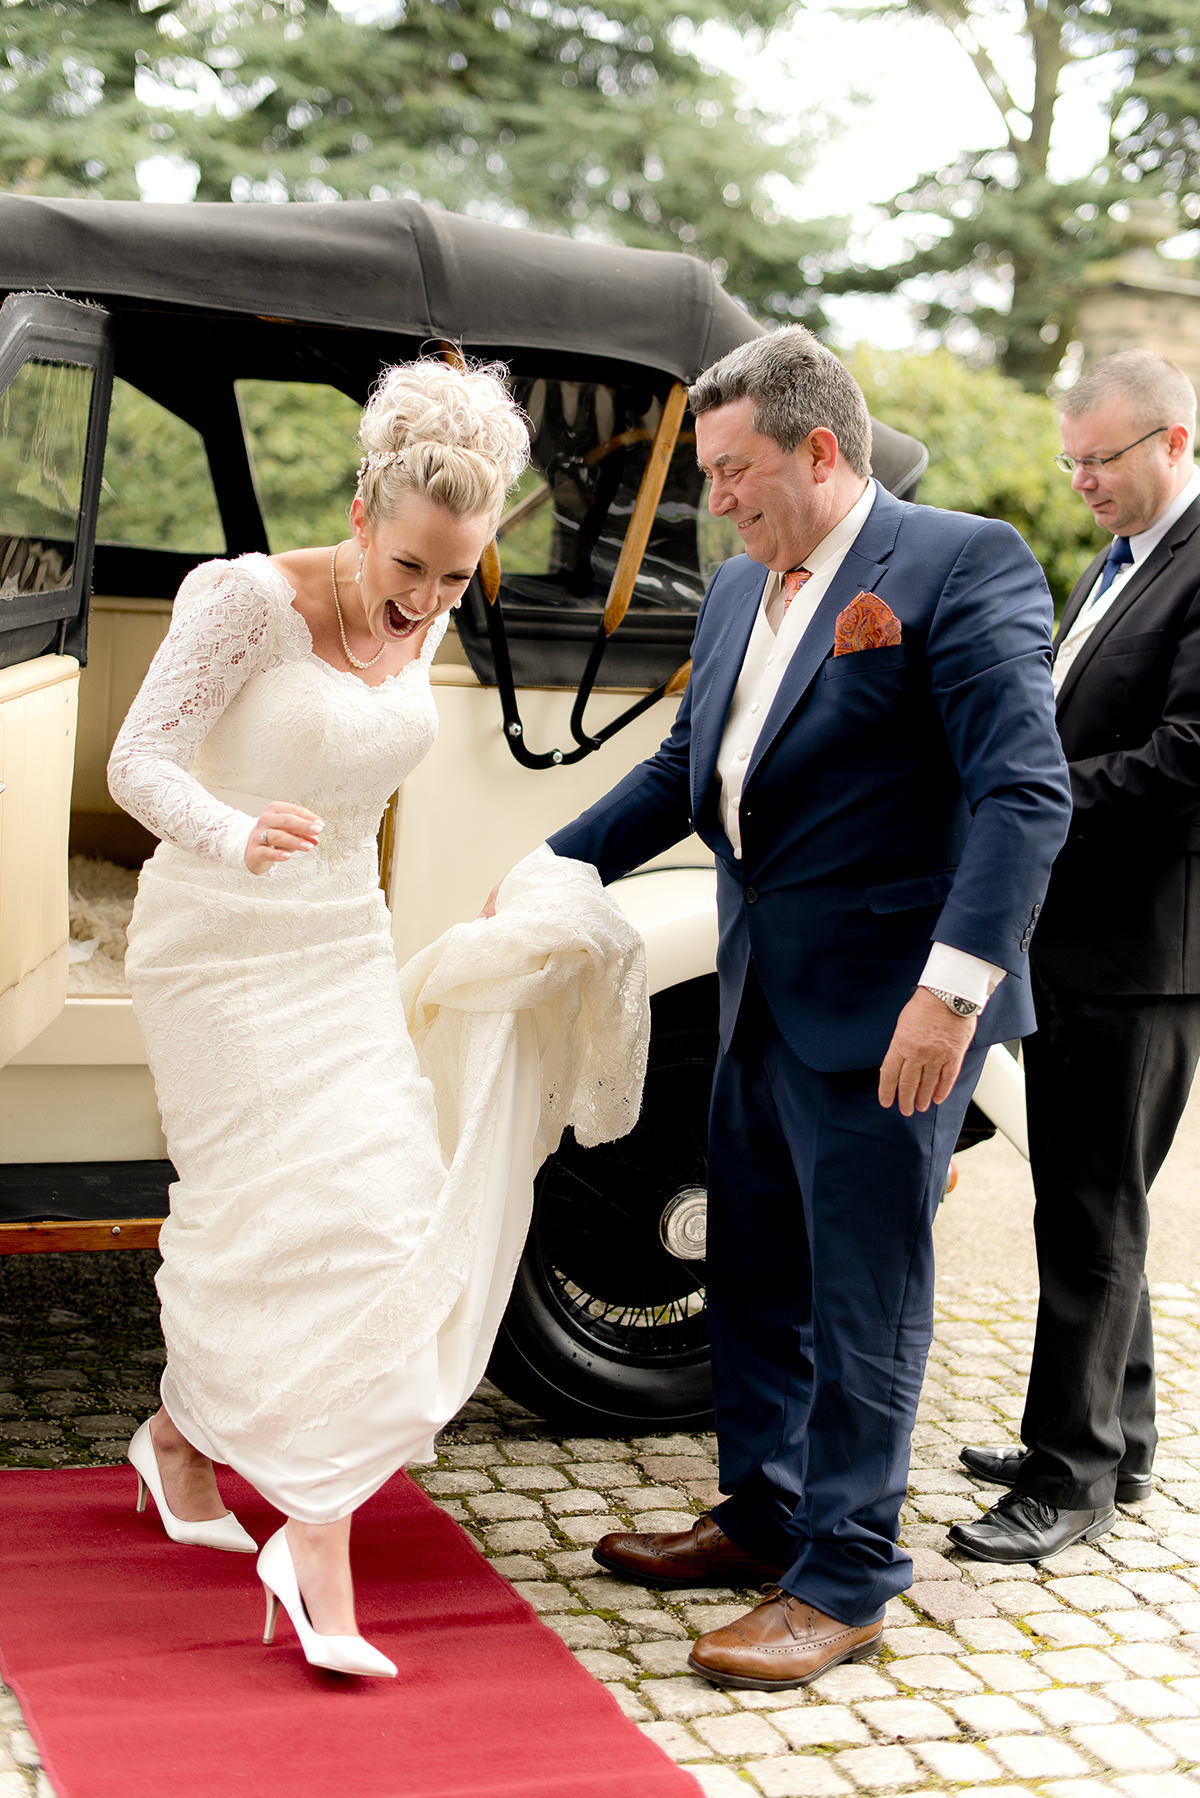 Brides arrival with laughter